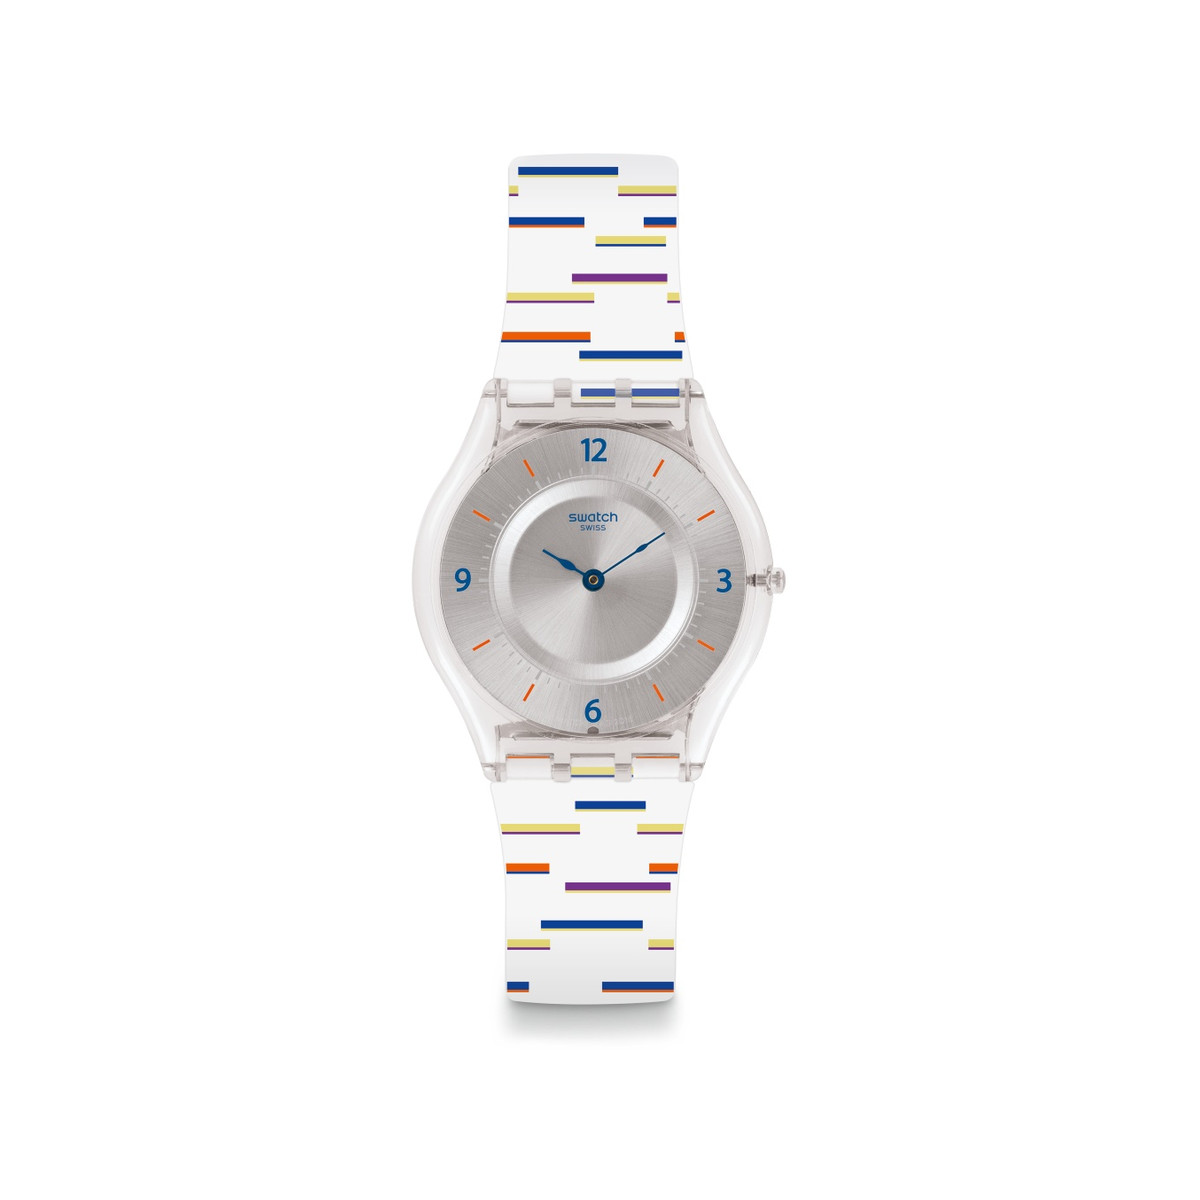 Montre Swatch femme silcone multicolore